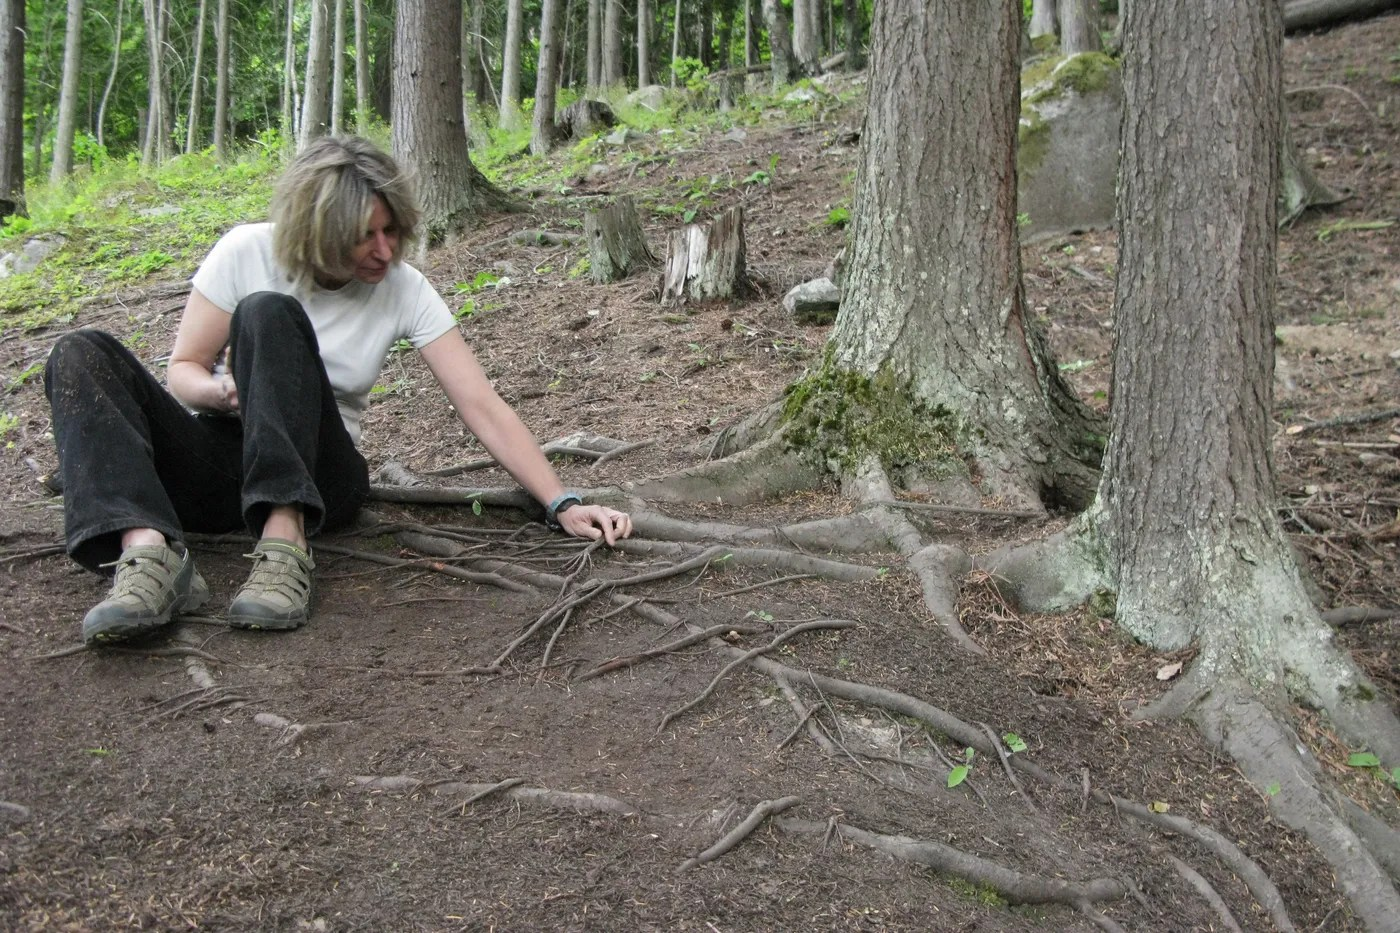 Writing with humility and passion, suzanne simard's unravelling of the secret life of trees is changing the scientific mindset. Suzanne Simard Changed How The World Sees Trees